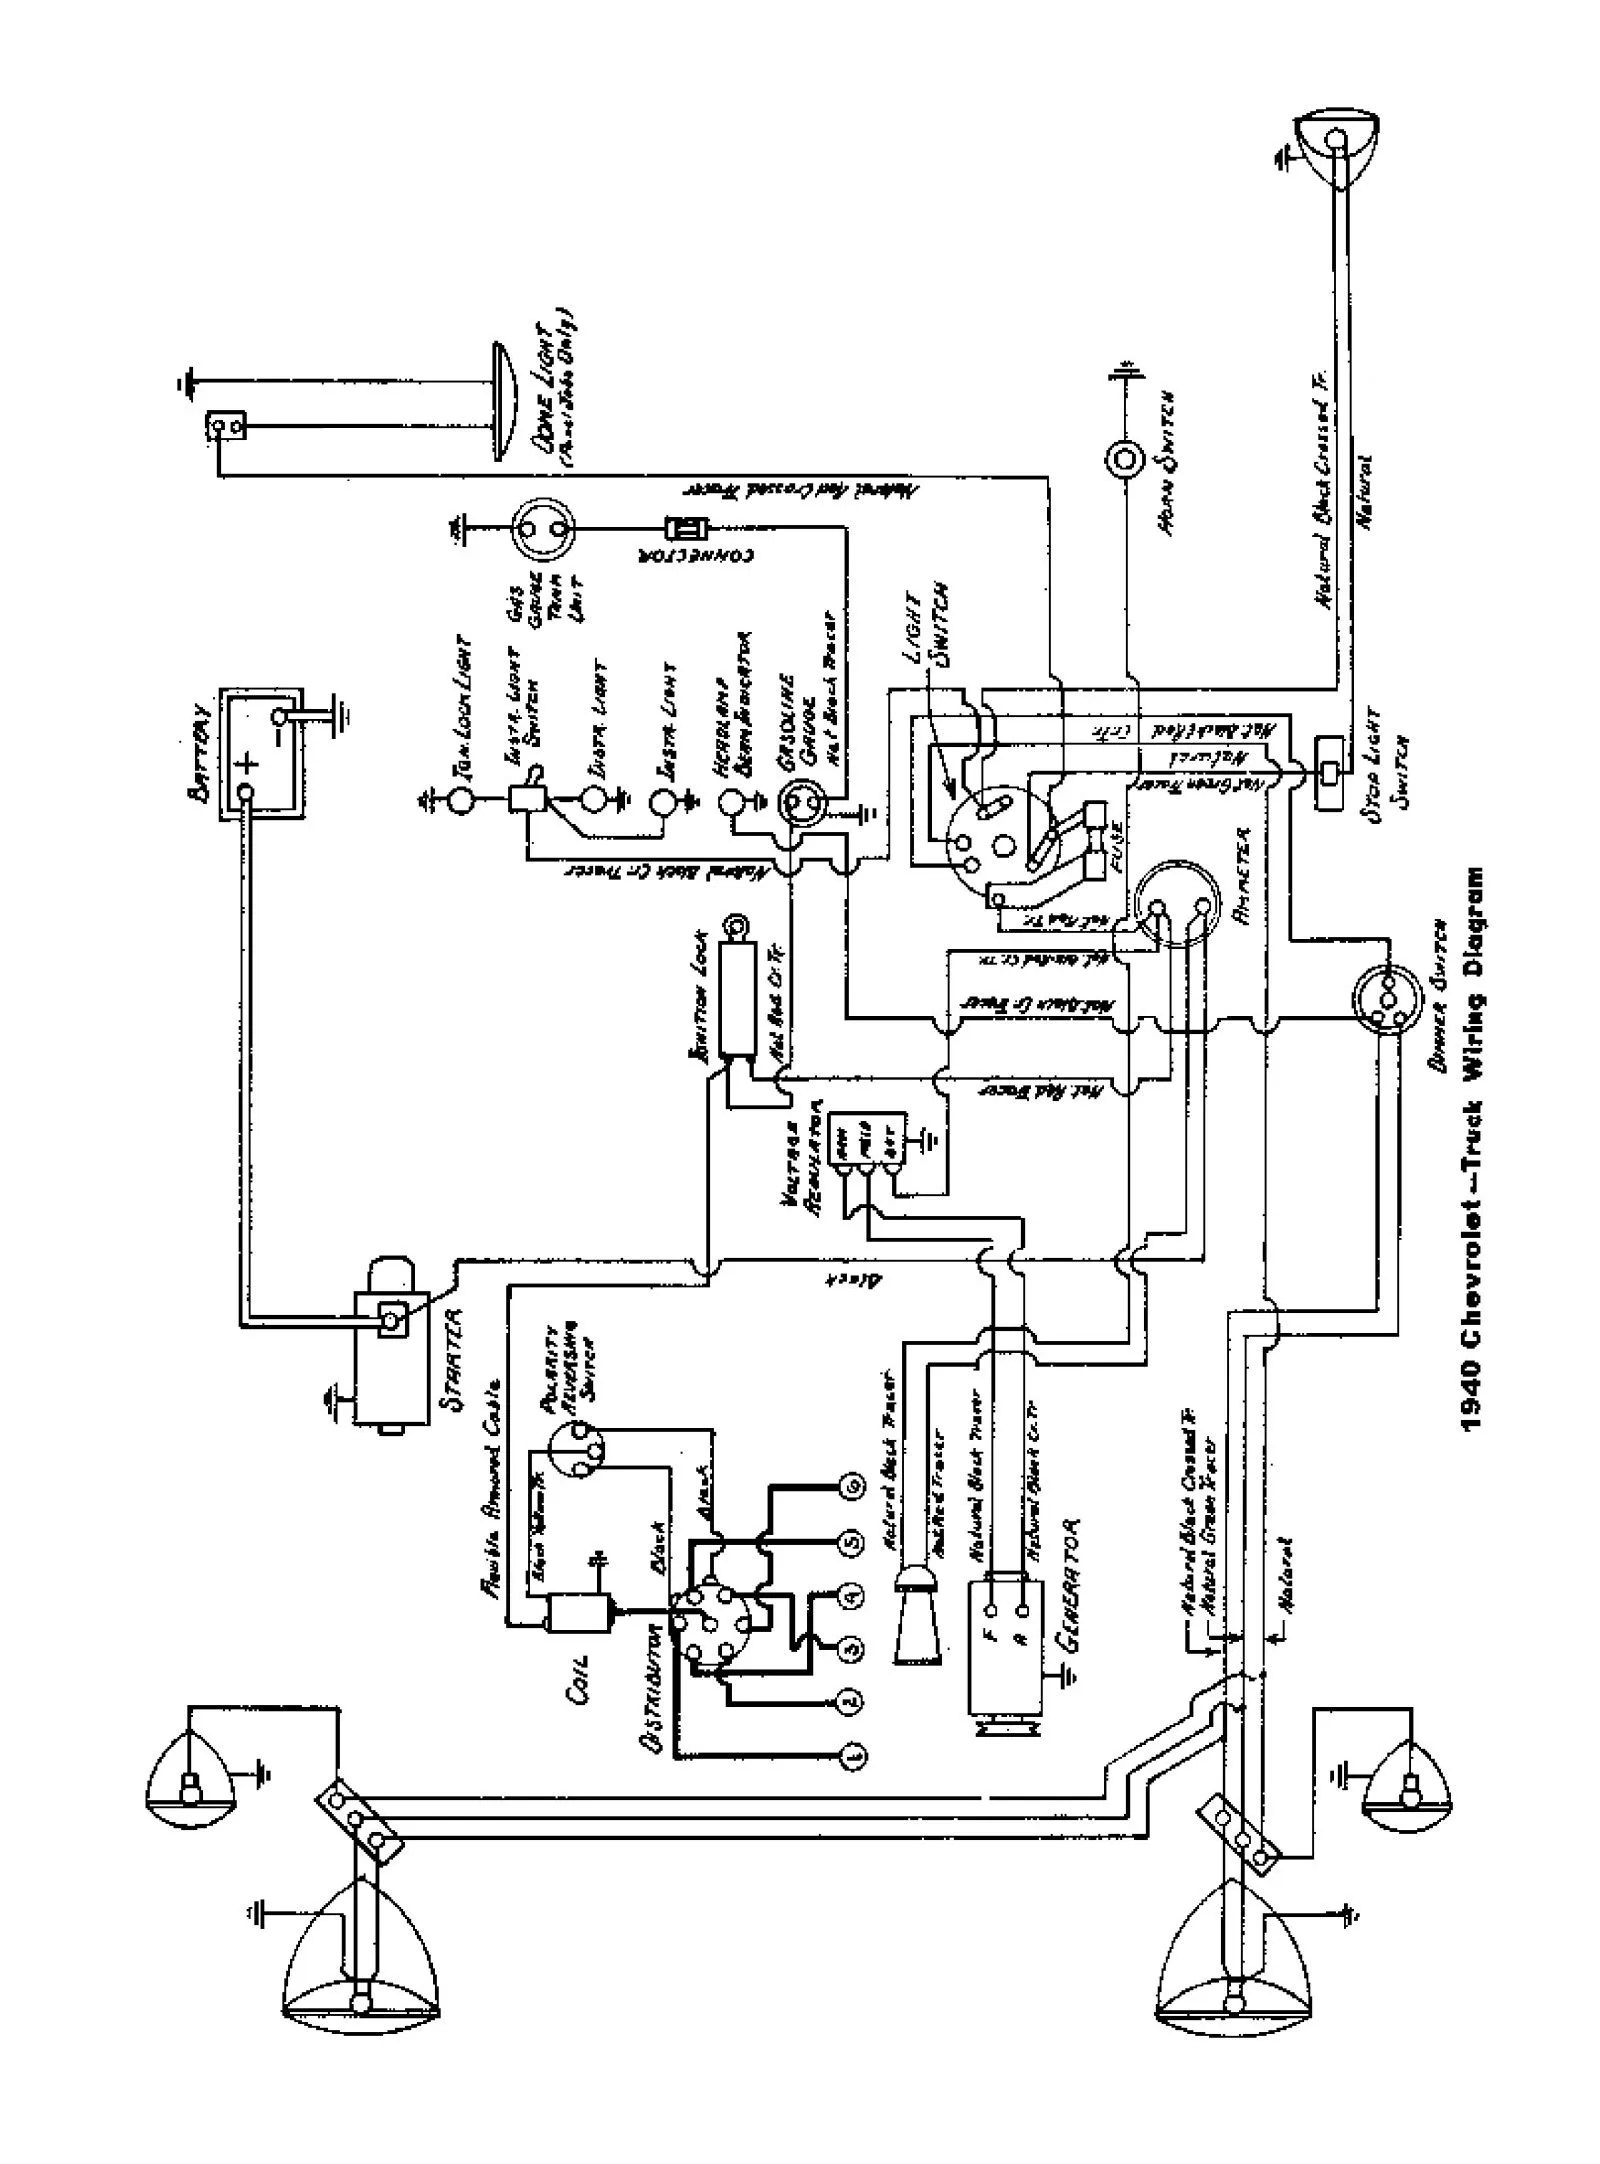 hight resolution of 1976 chevy truck wiring diagram wiring diagram centre 1976 chevy wiring diagram 1976 chevy truck wiring